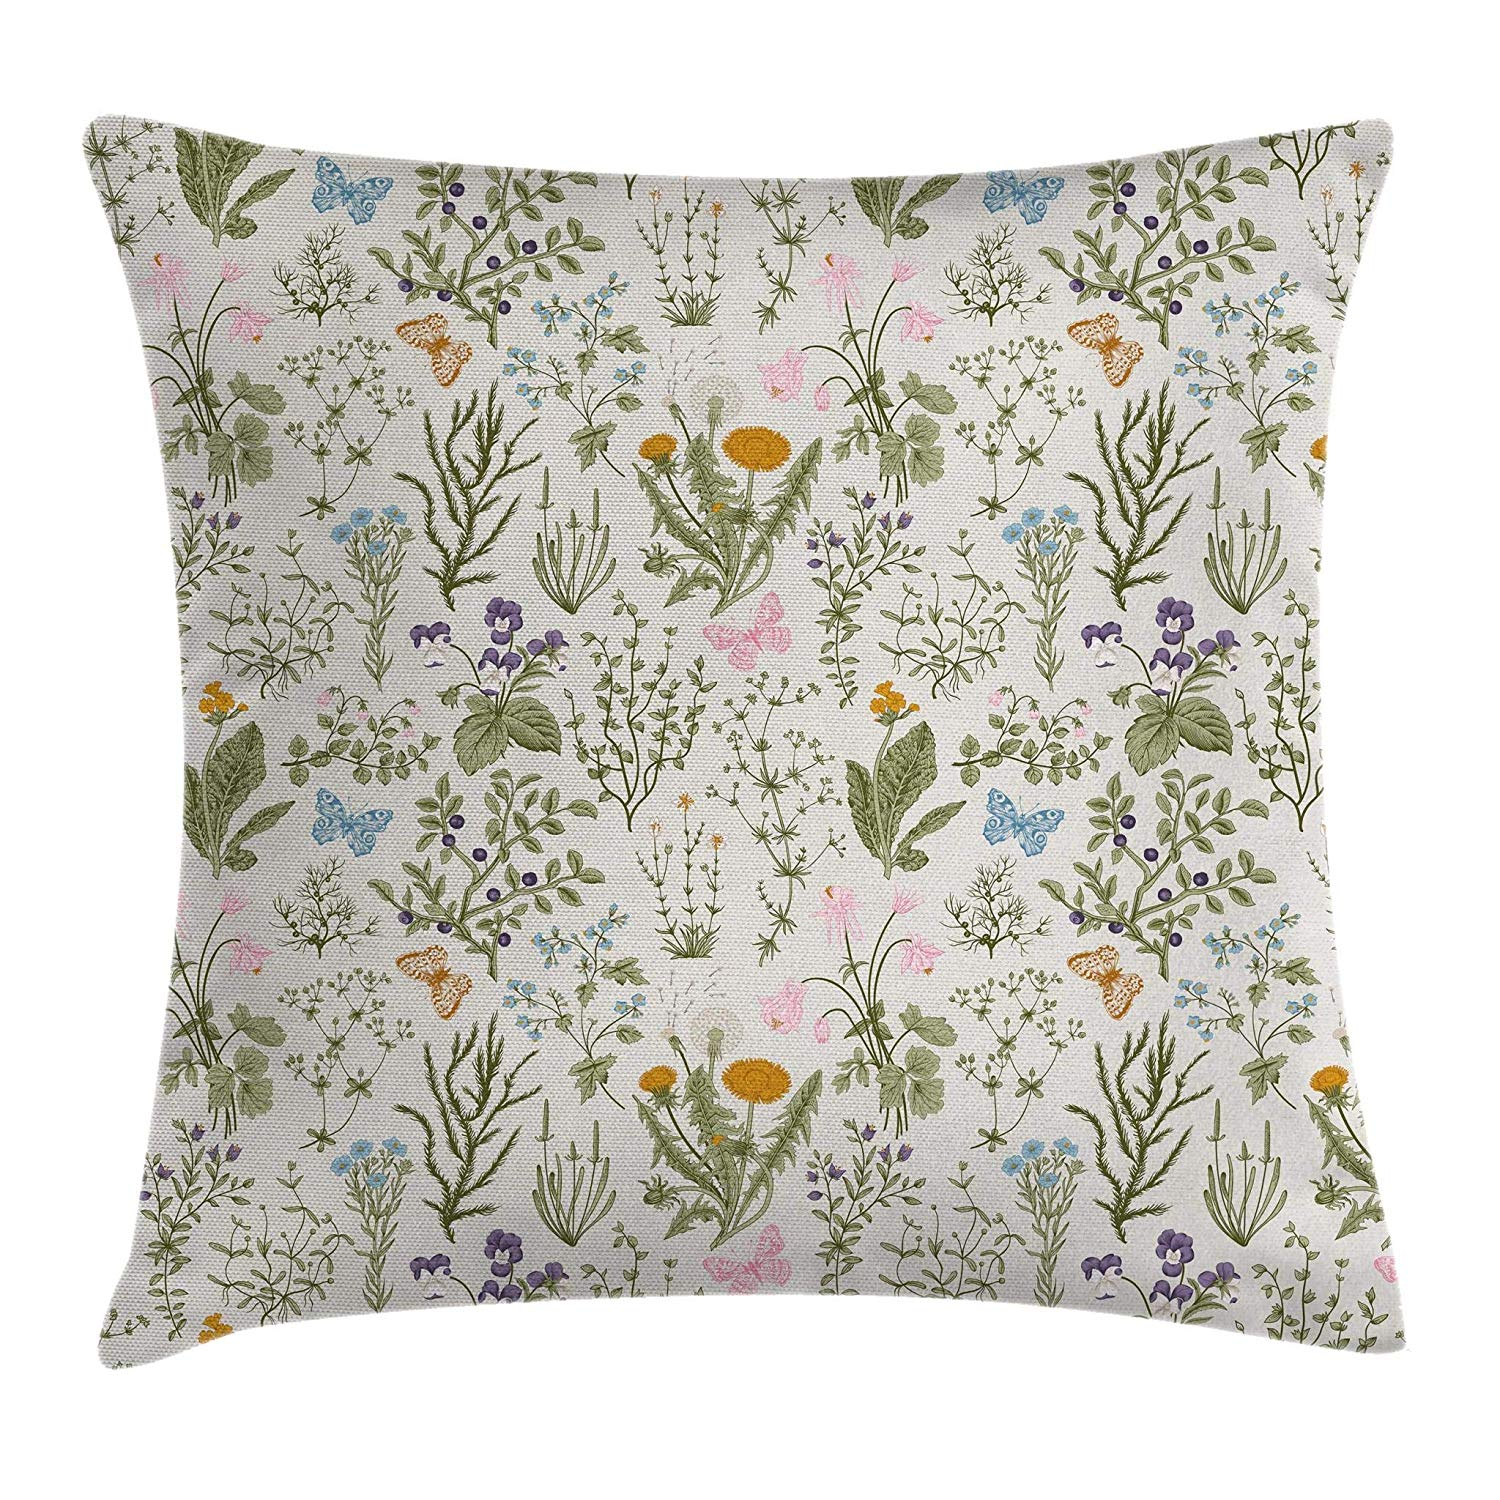 Vintage Garden plants and herbs botanical spring pillow cover affiliate link